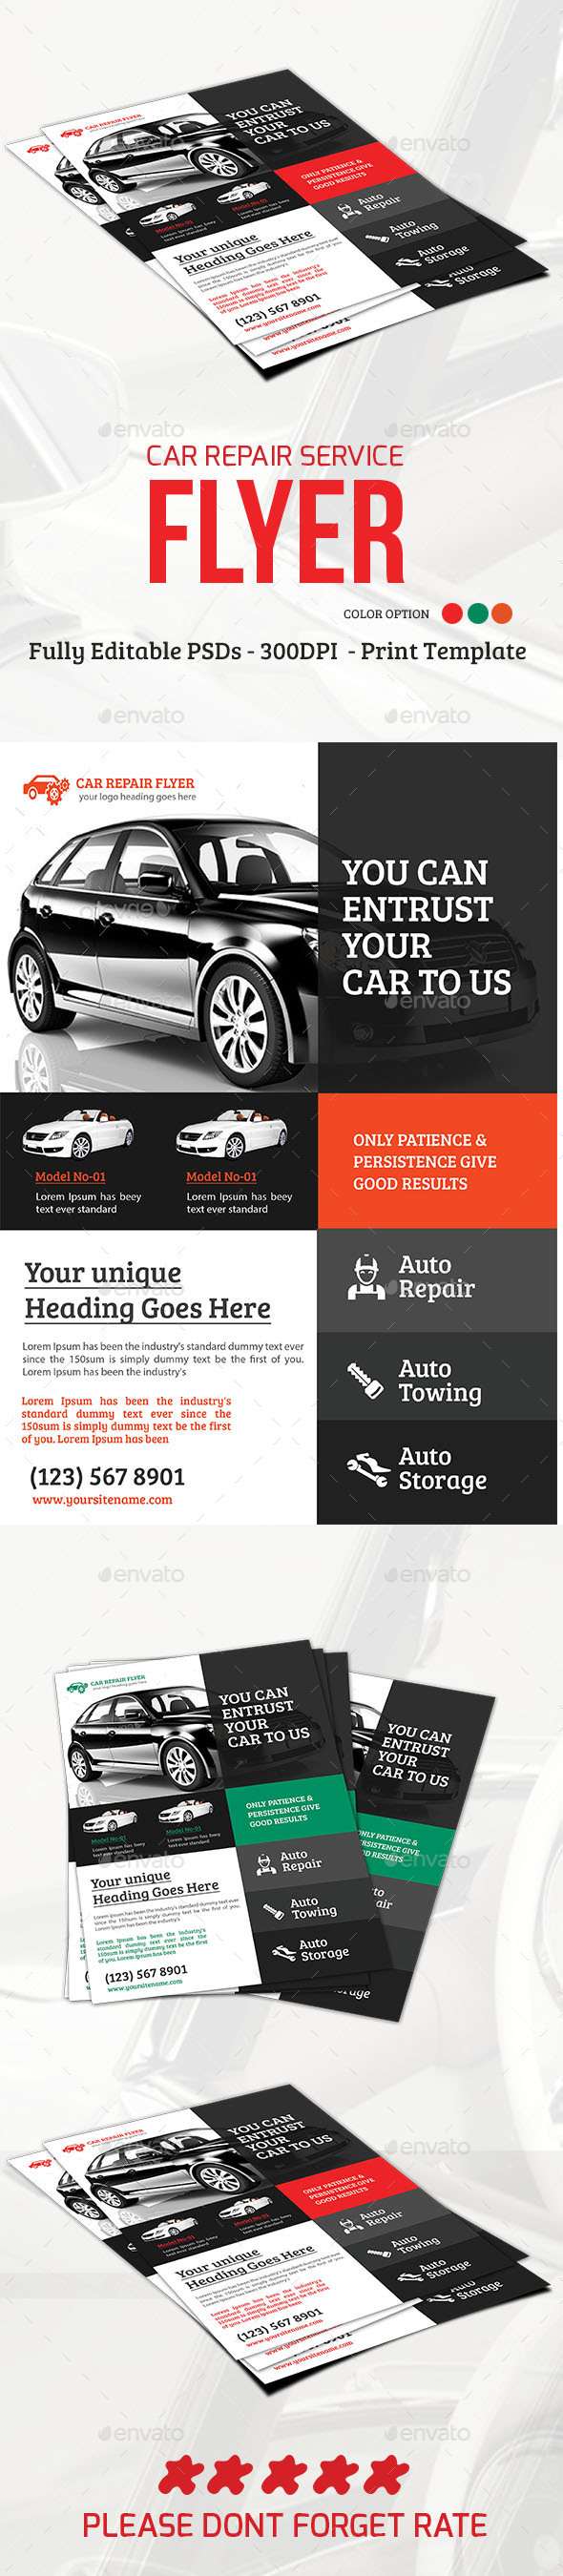 Car Repair Service Flyer - Flyers Print Templates